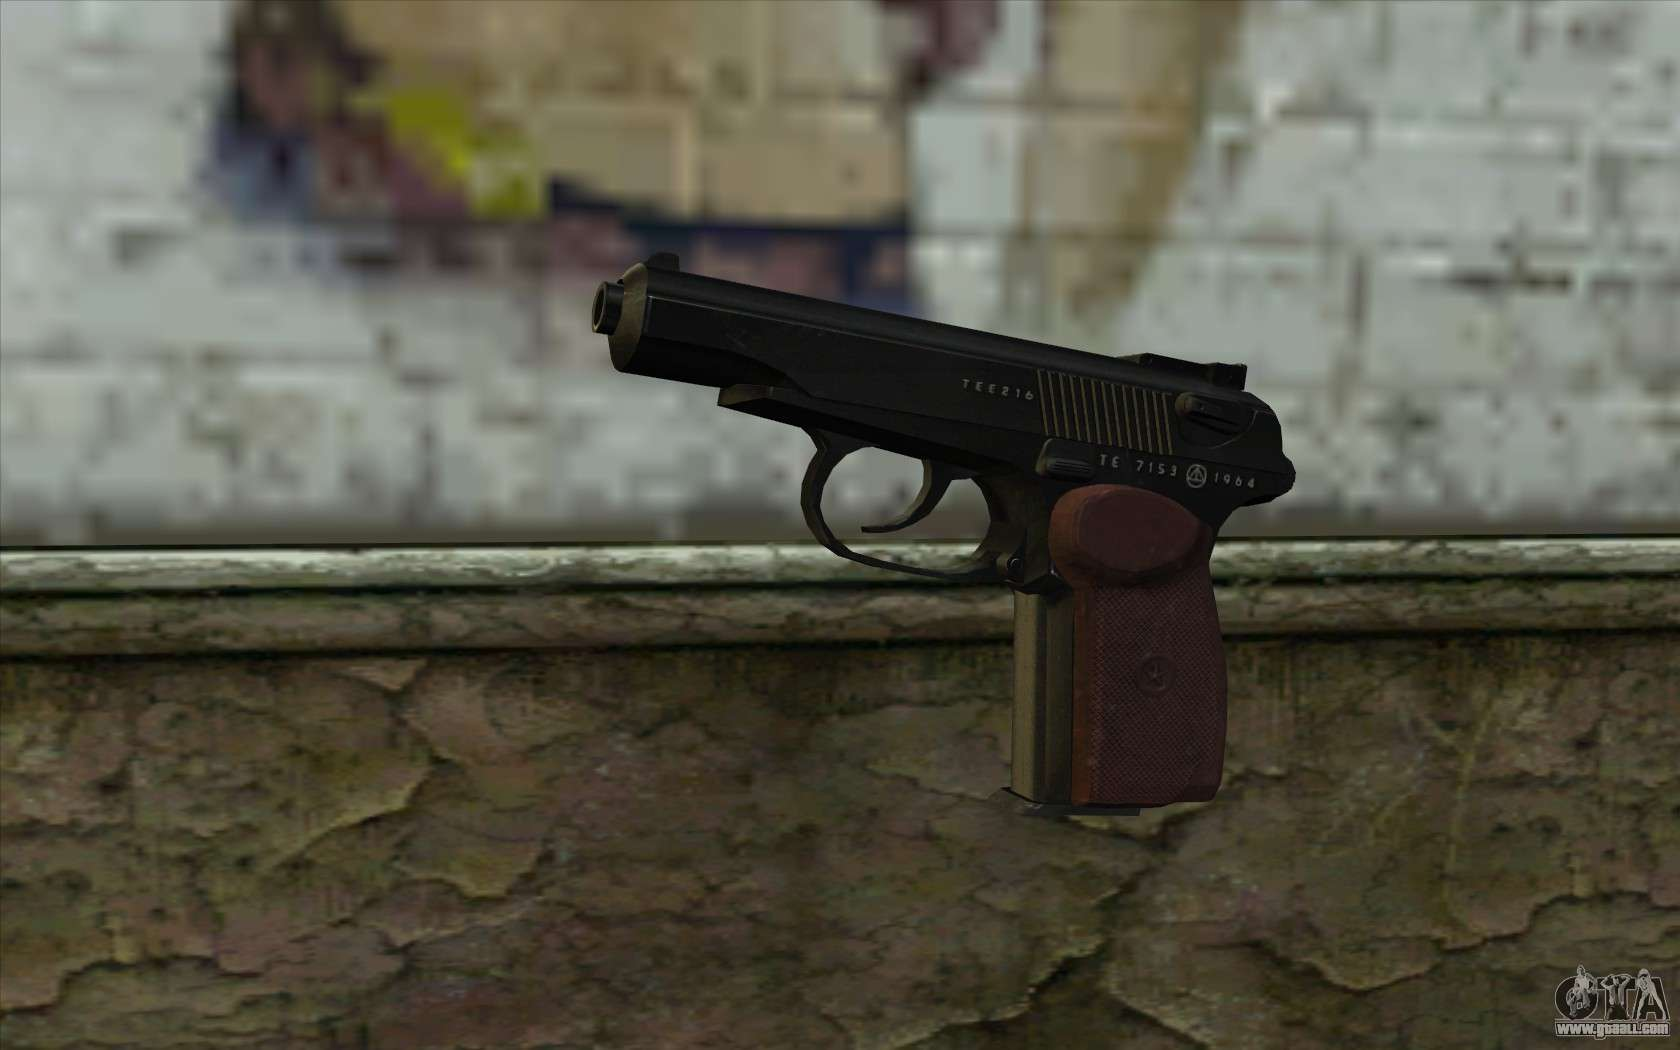 The Makarov Pistol For Gta San Andreas Images, Photos, Reviews